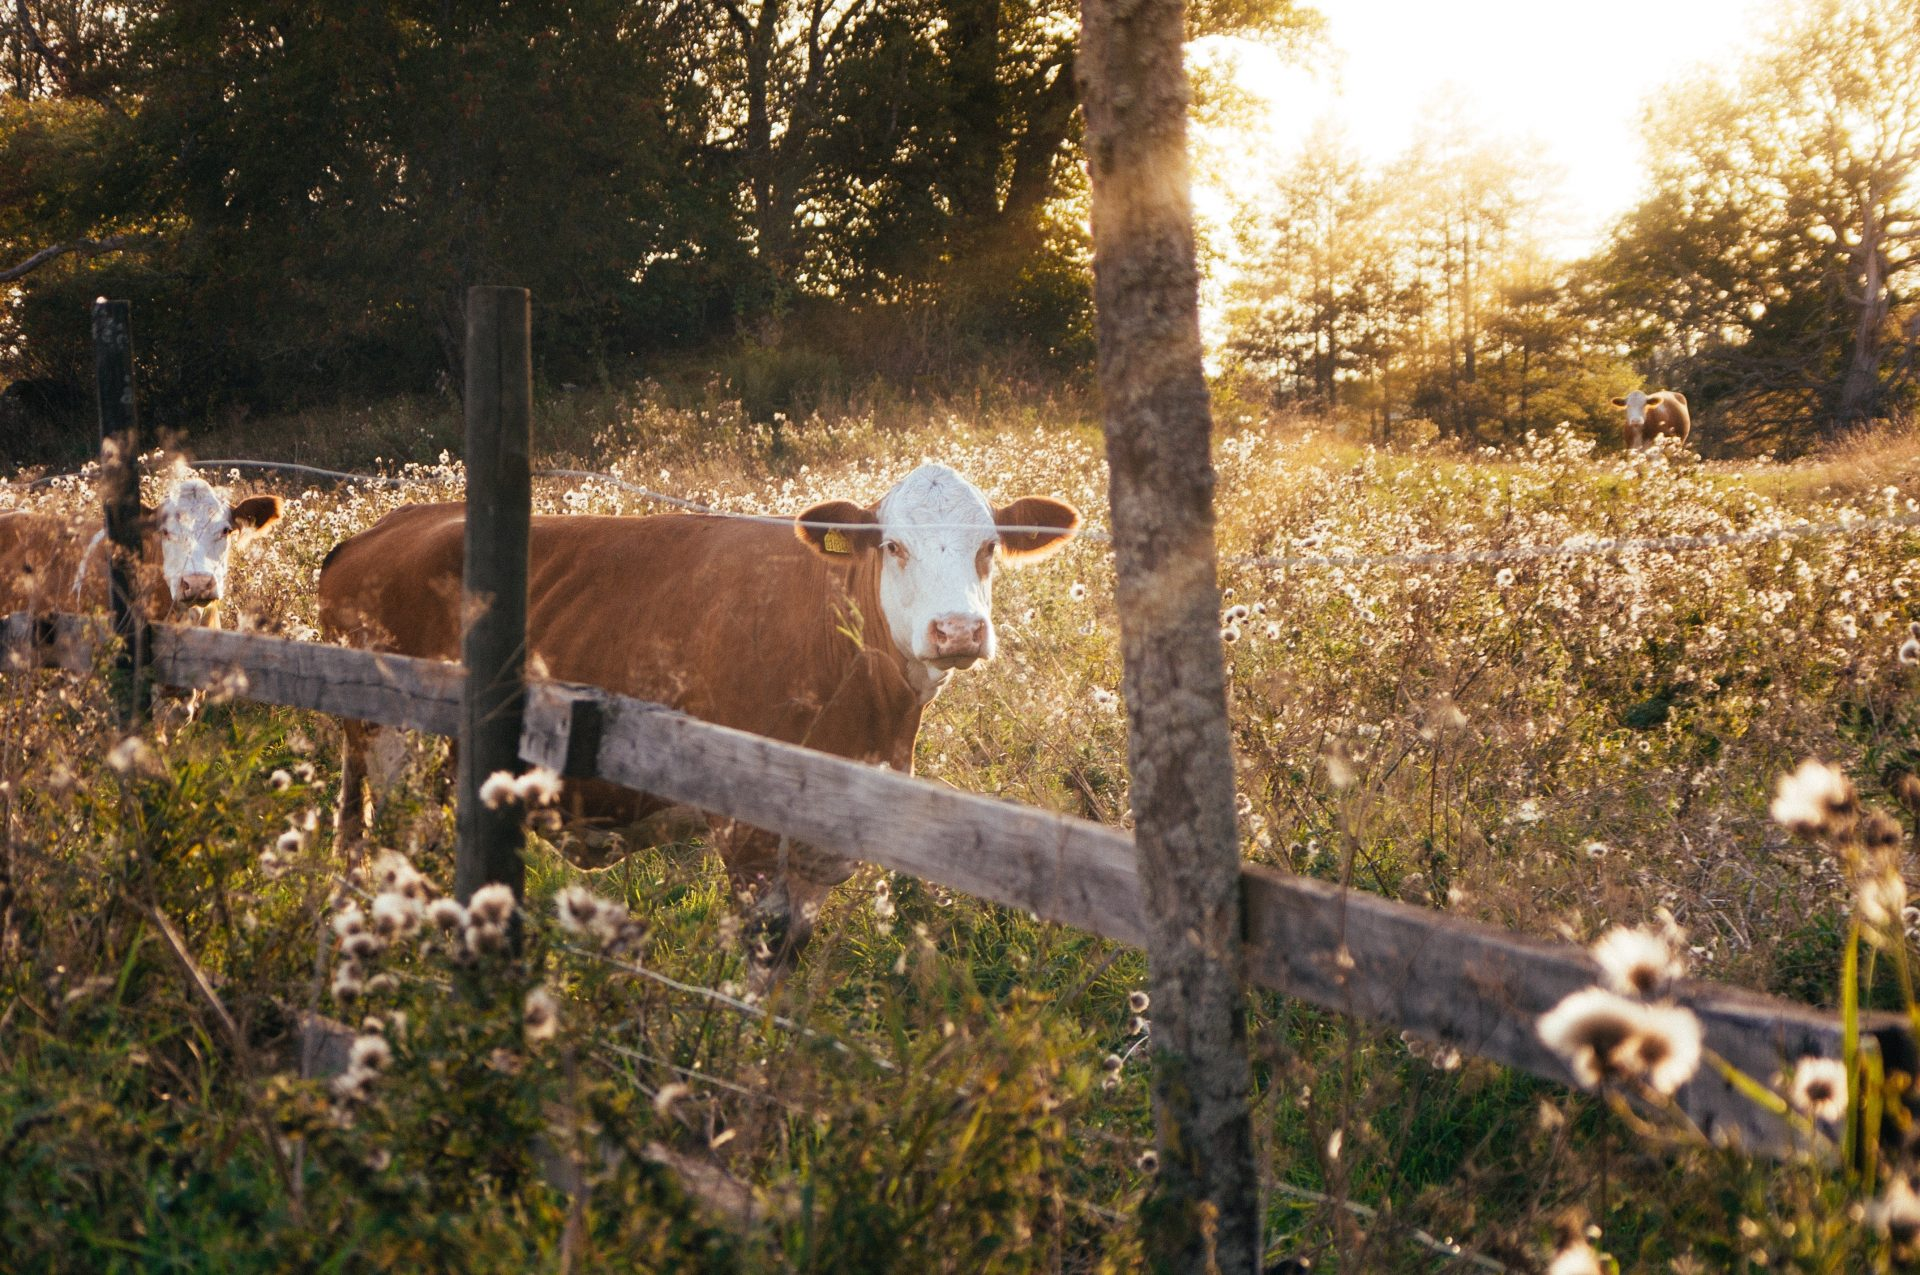 Pair of cattle in field behind wooden fence